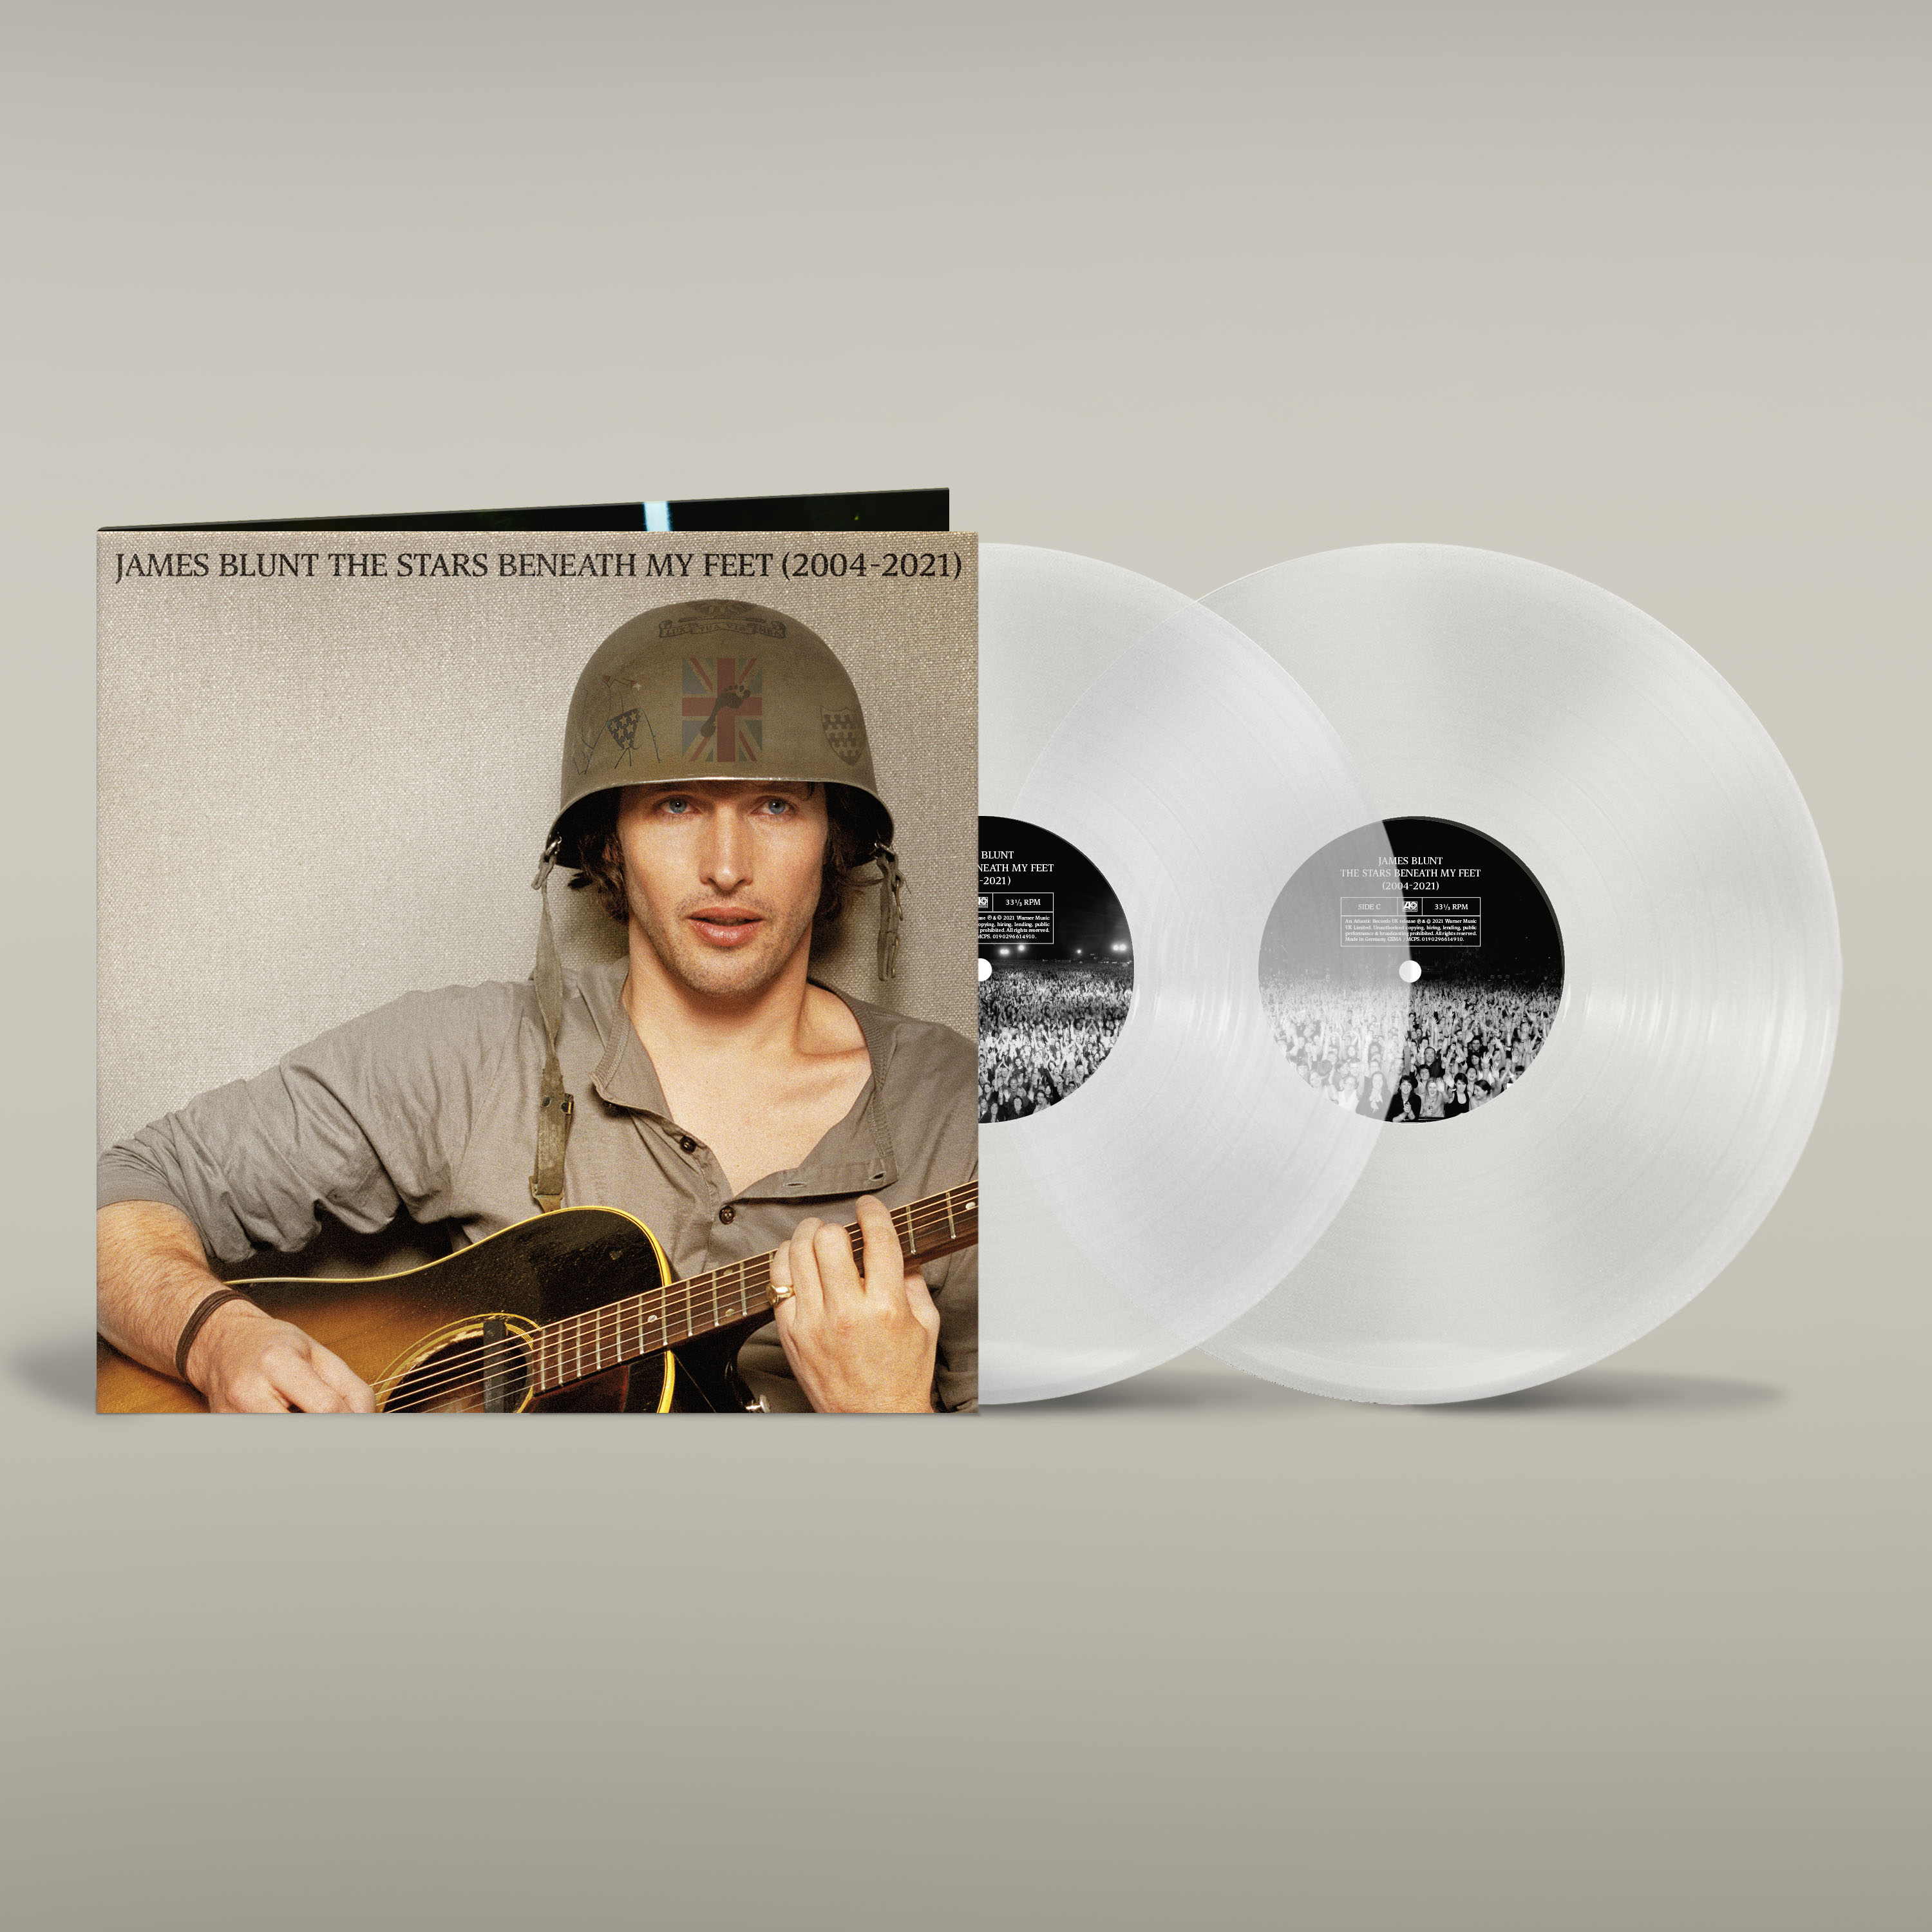 Buy Online James Blunt - The Stars Beneath My Feet (2004 - 2021) Limited Edition Clear